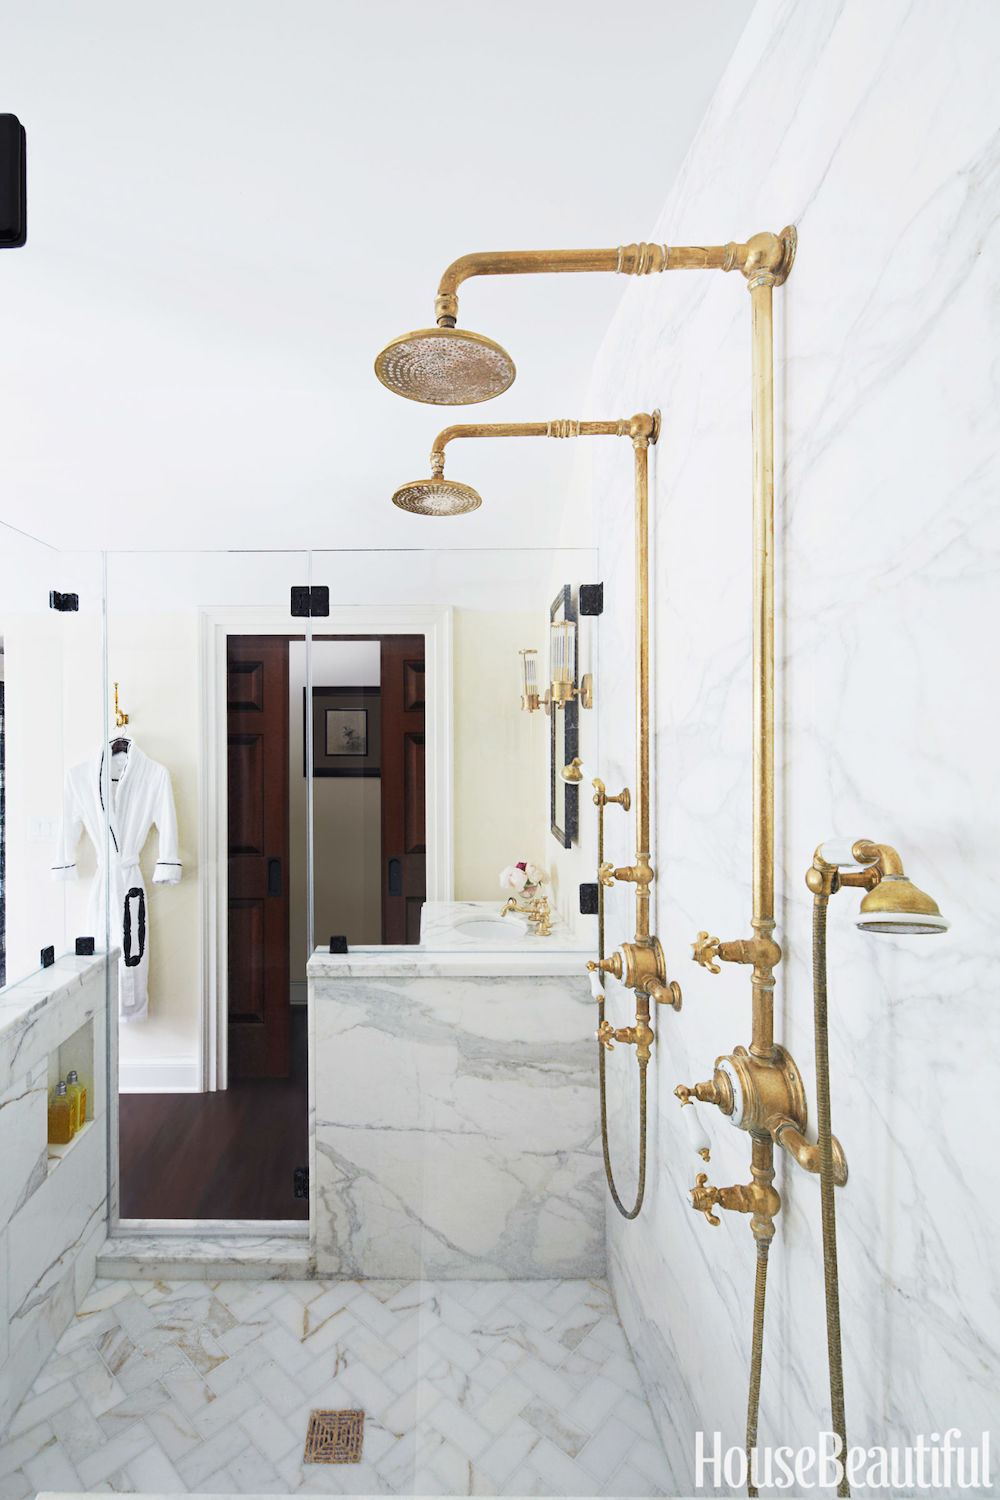 Brass Shower Heads in Marble Bathroom